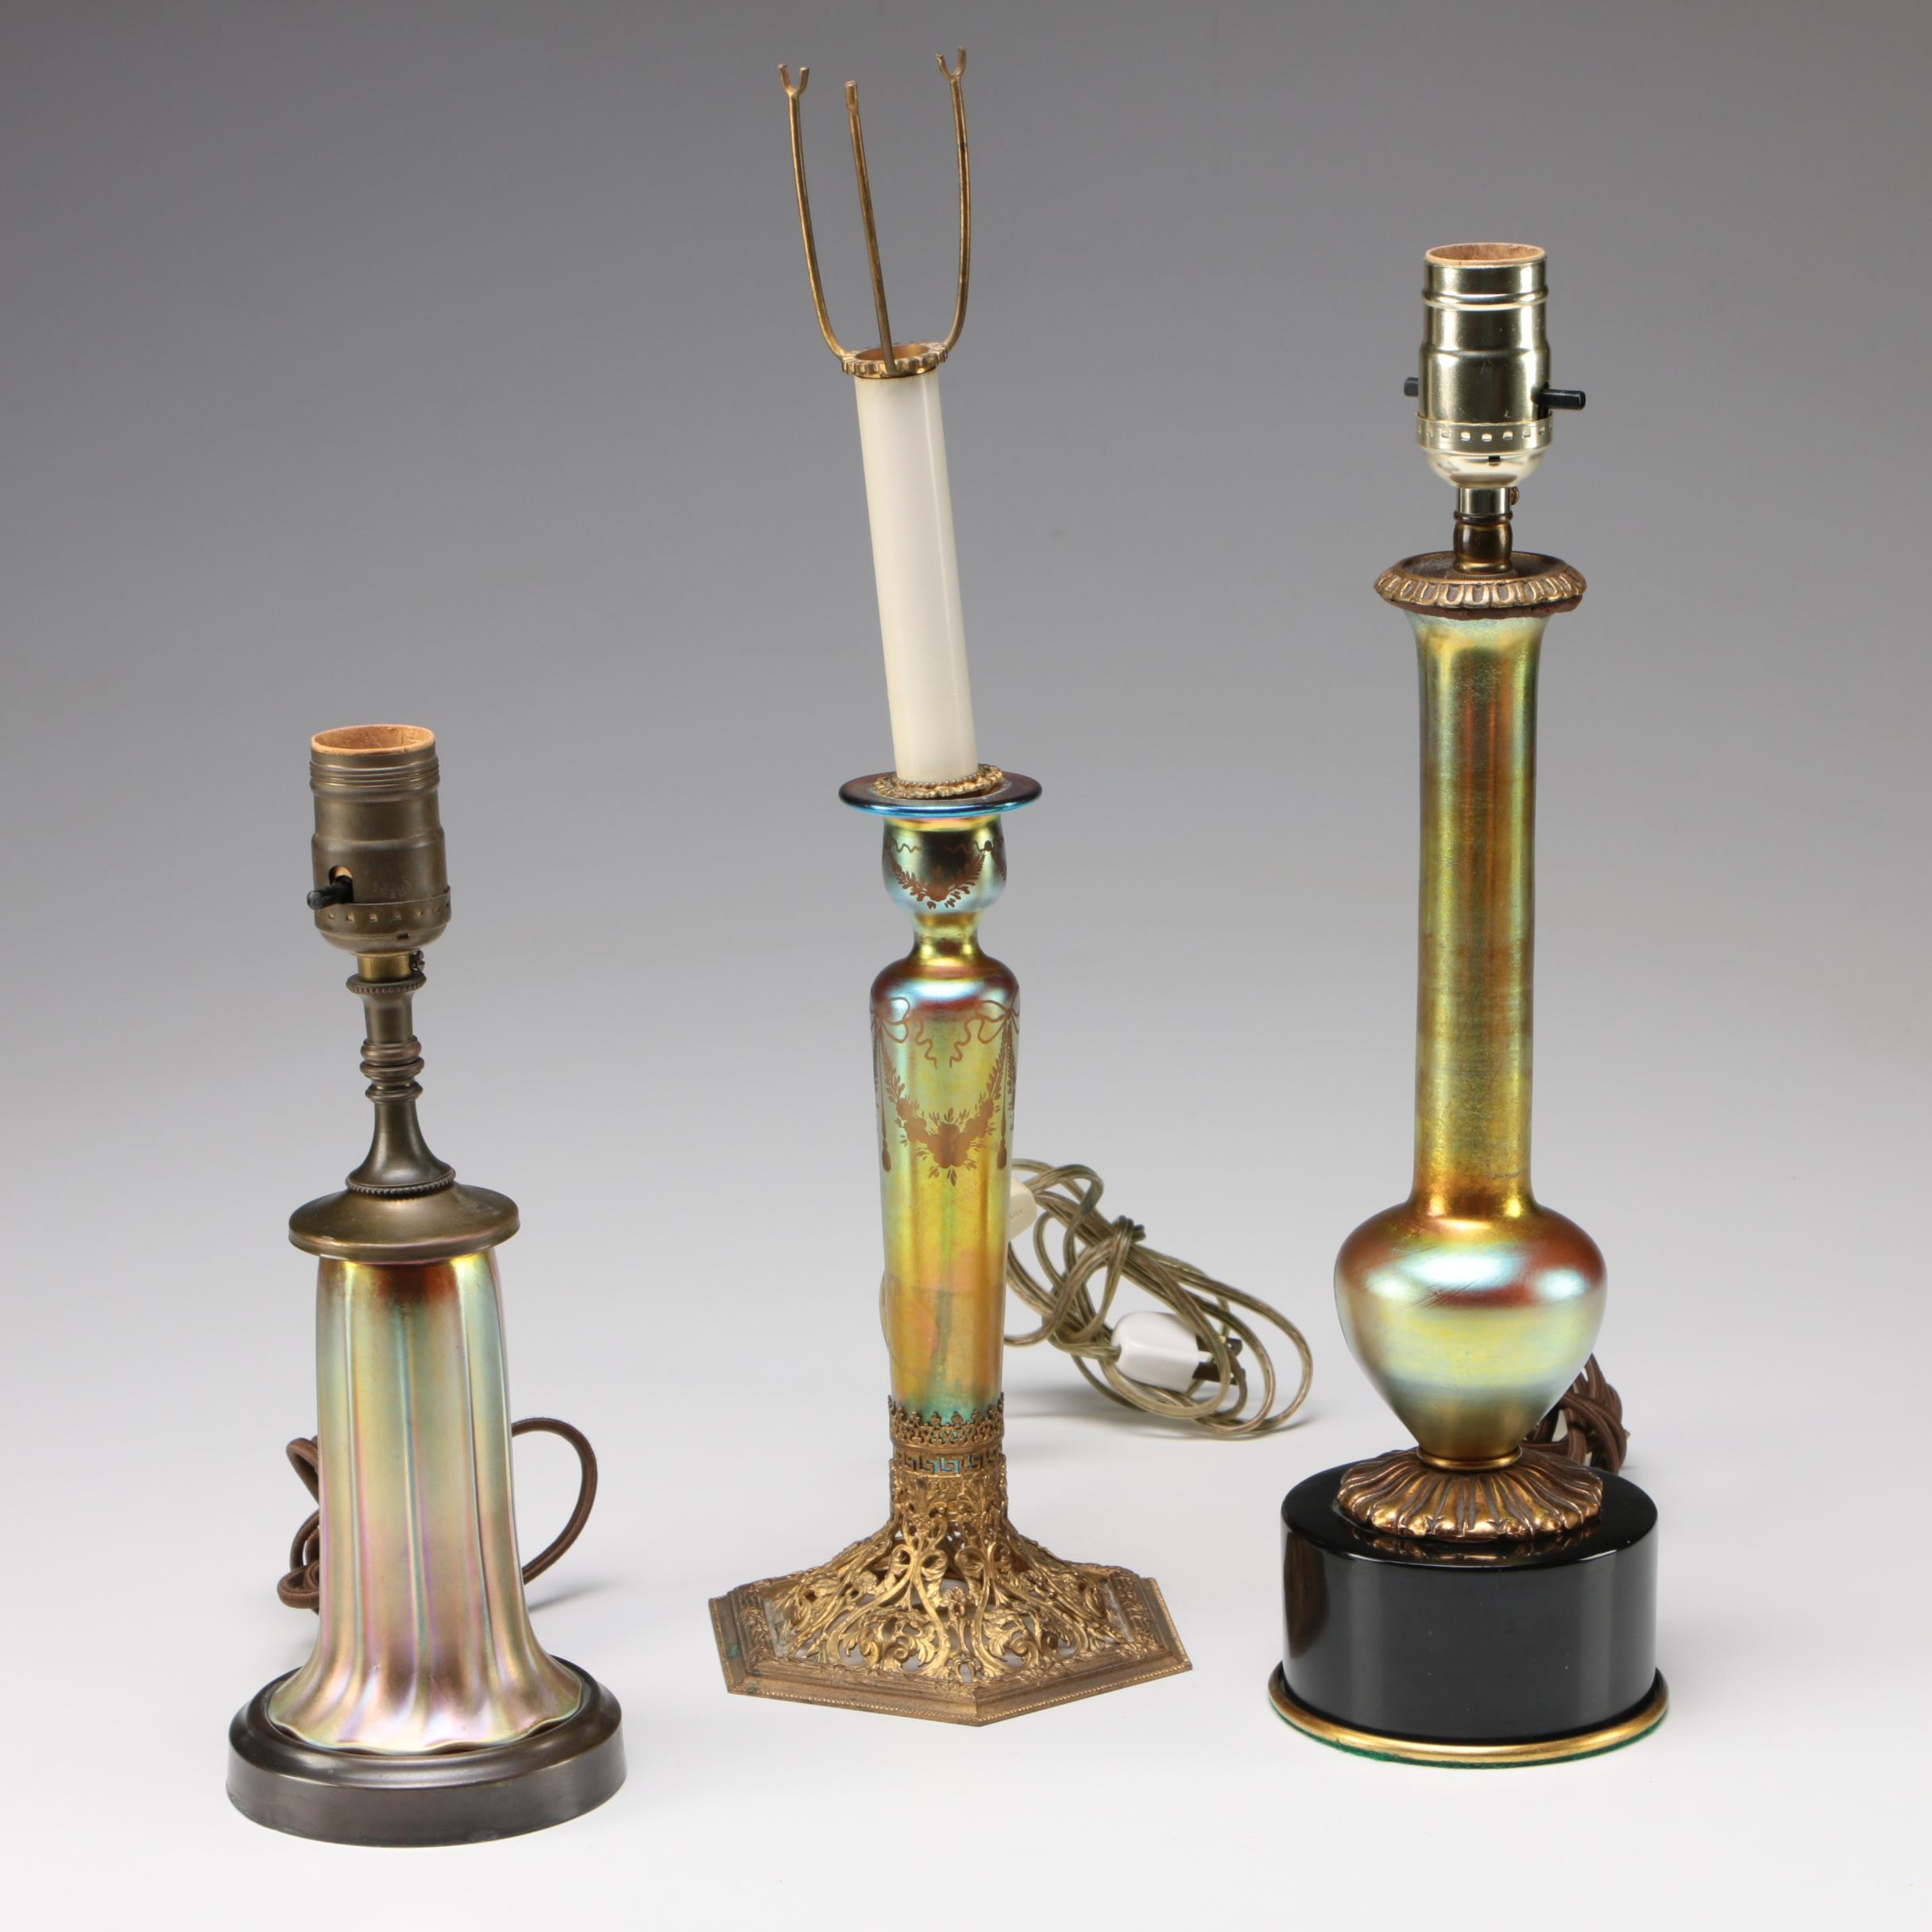 Steuben Gold Aurene Art Glass Table Lamps by Frederick Carder, 1903 - 1933